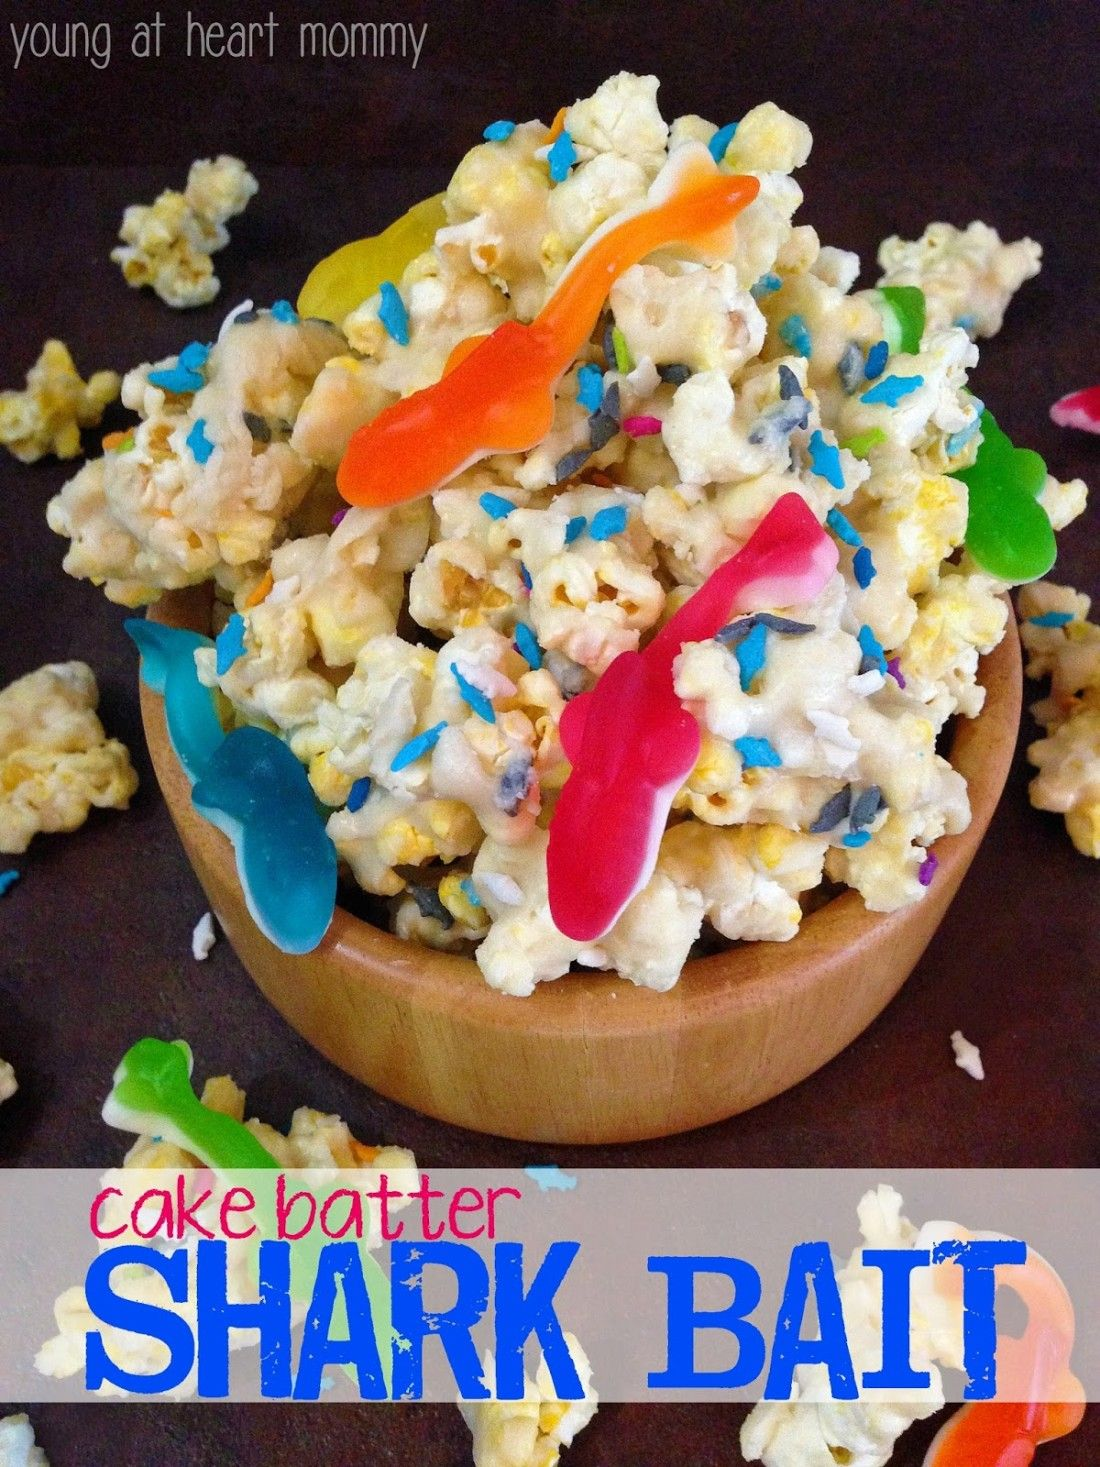 Shark Week Food and Drink Ideas - A Cup Full of Sass